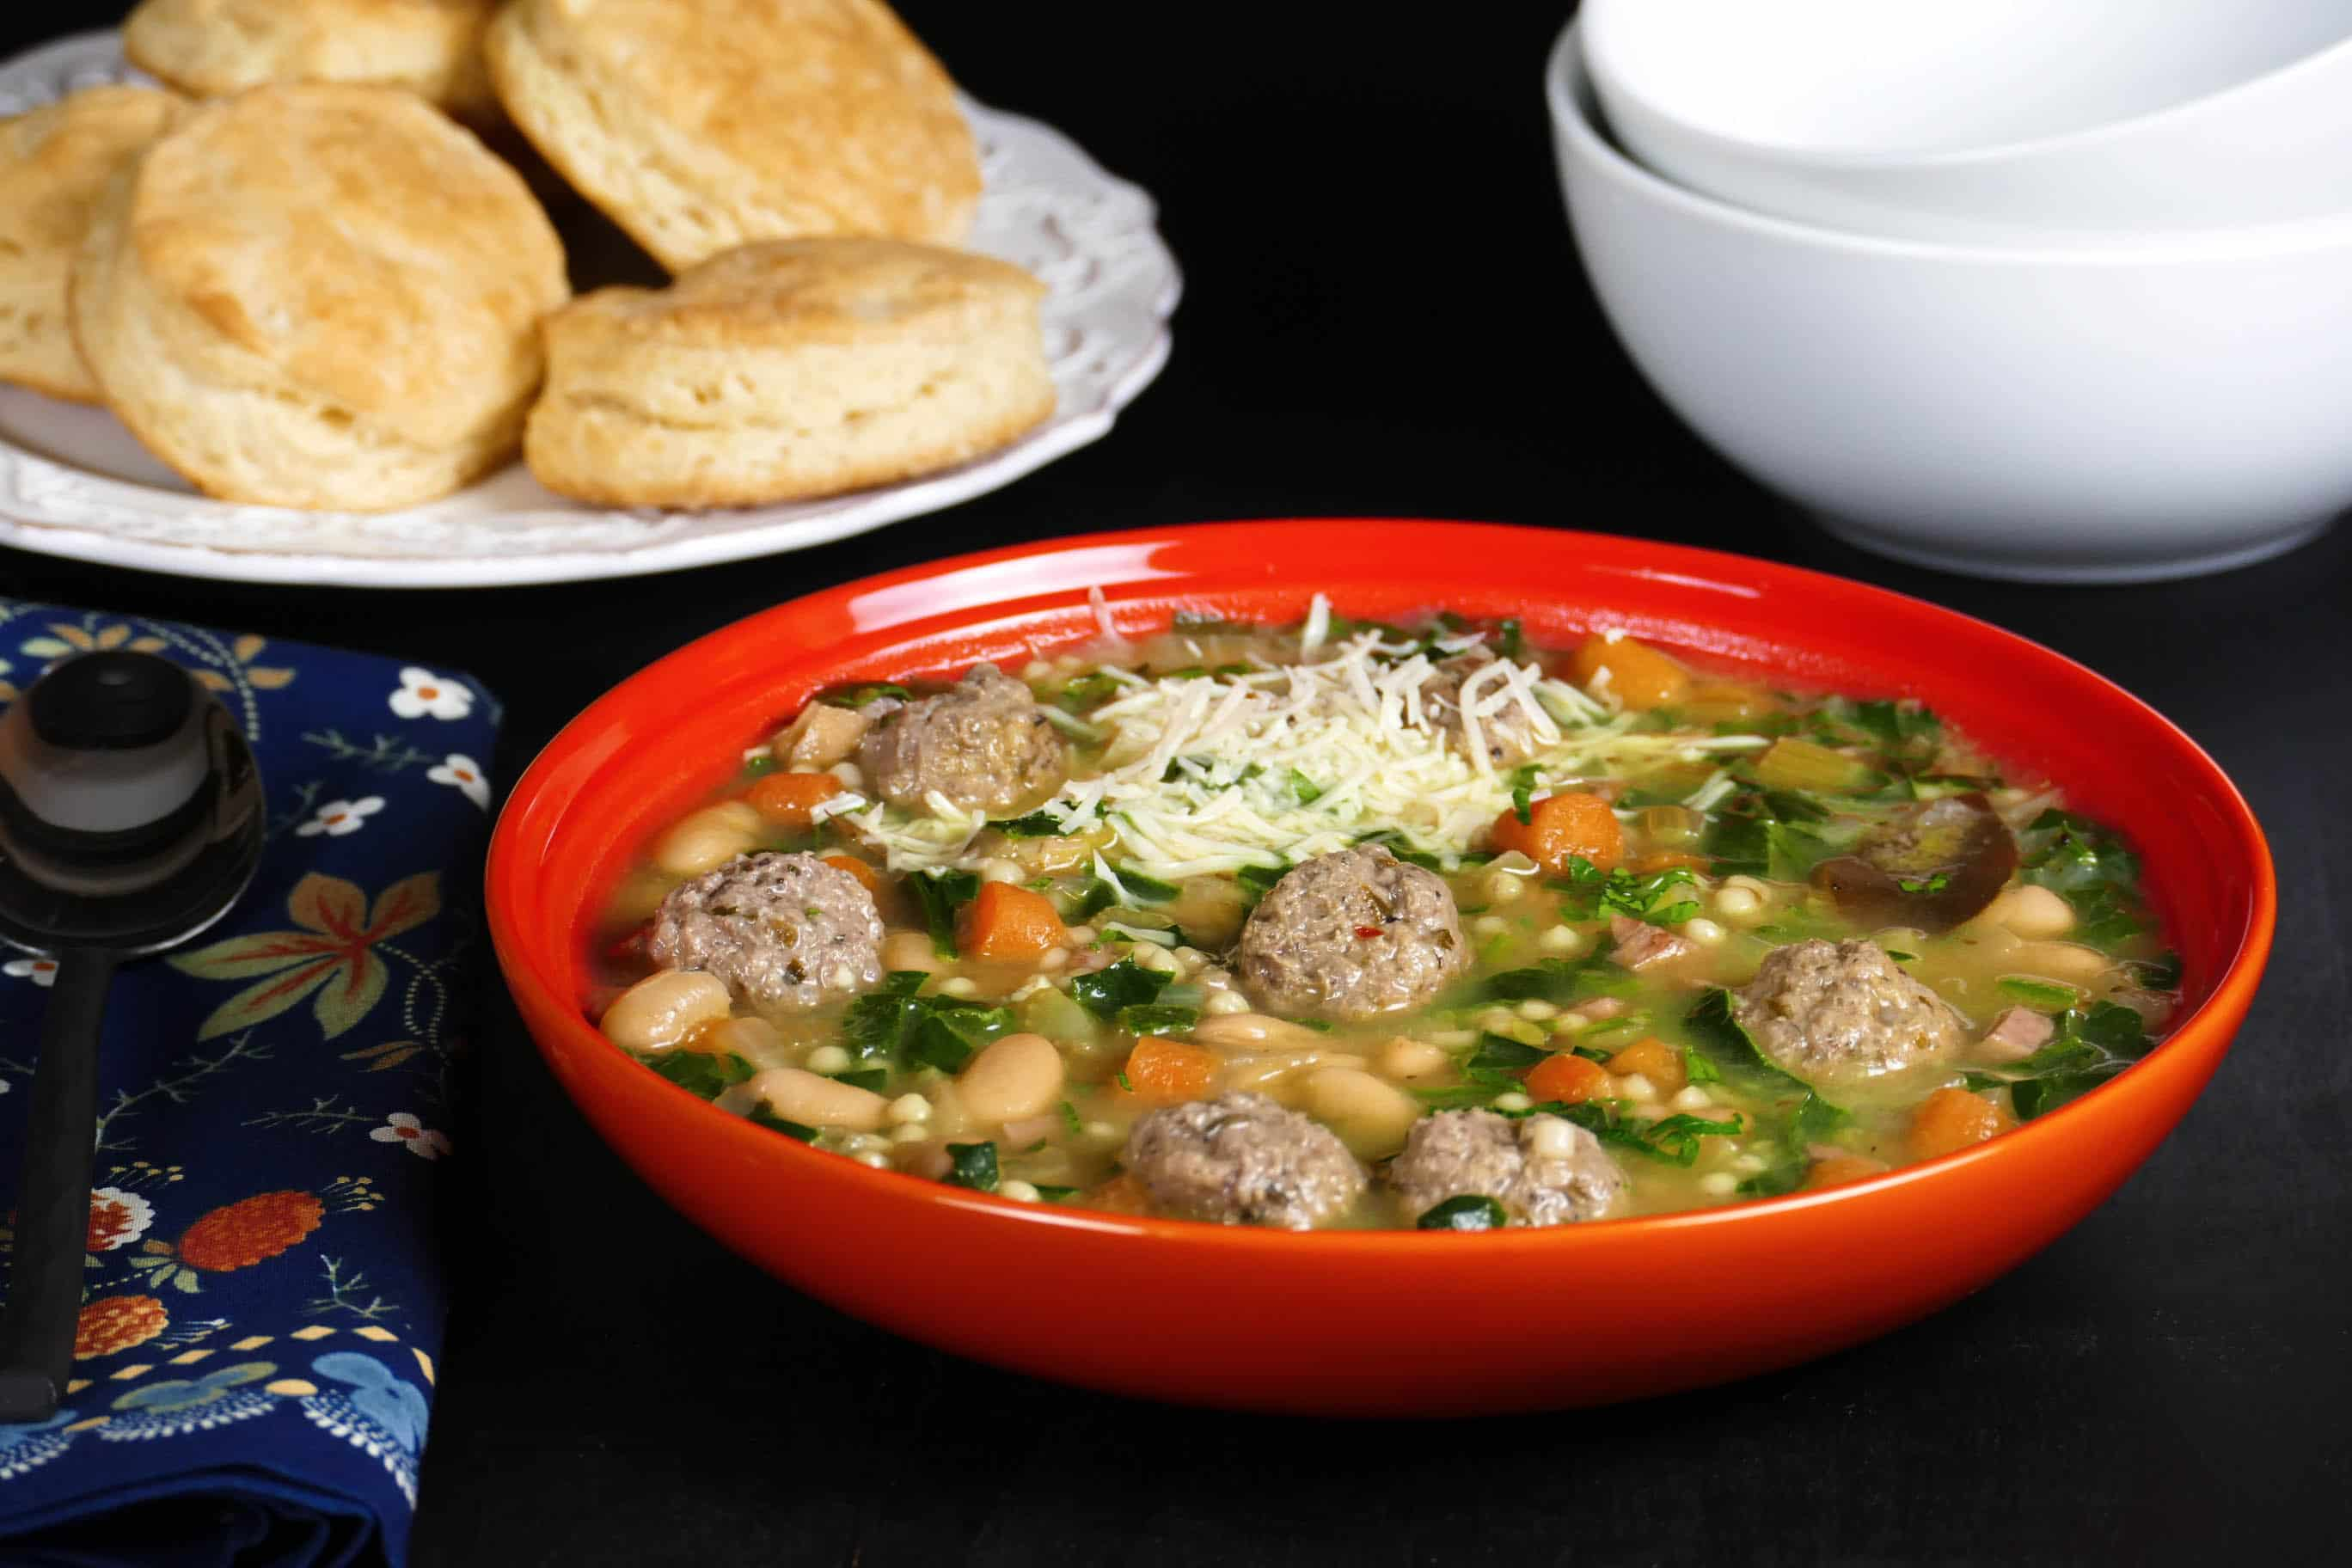 Instant Pot Italian Wedding Soup - Orange bowl with beans, carrots, meatballs, spinach, parmesan and bread and empty bowls in the background - Paint the Kitchen Red